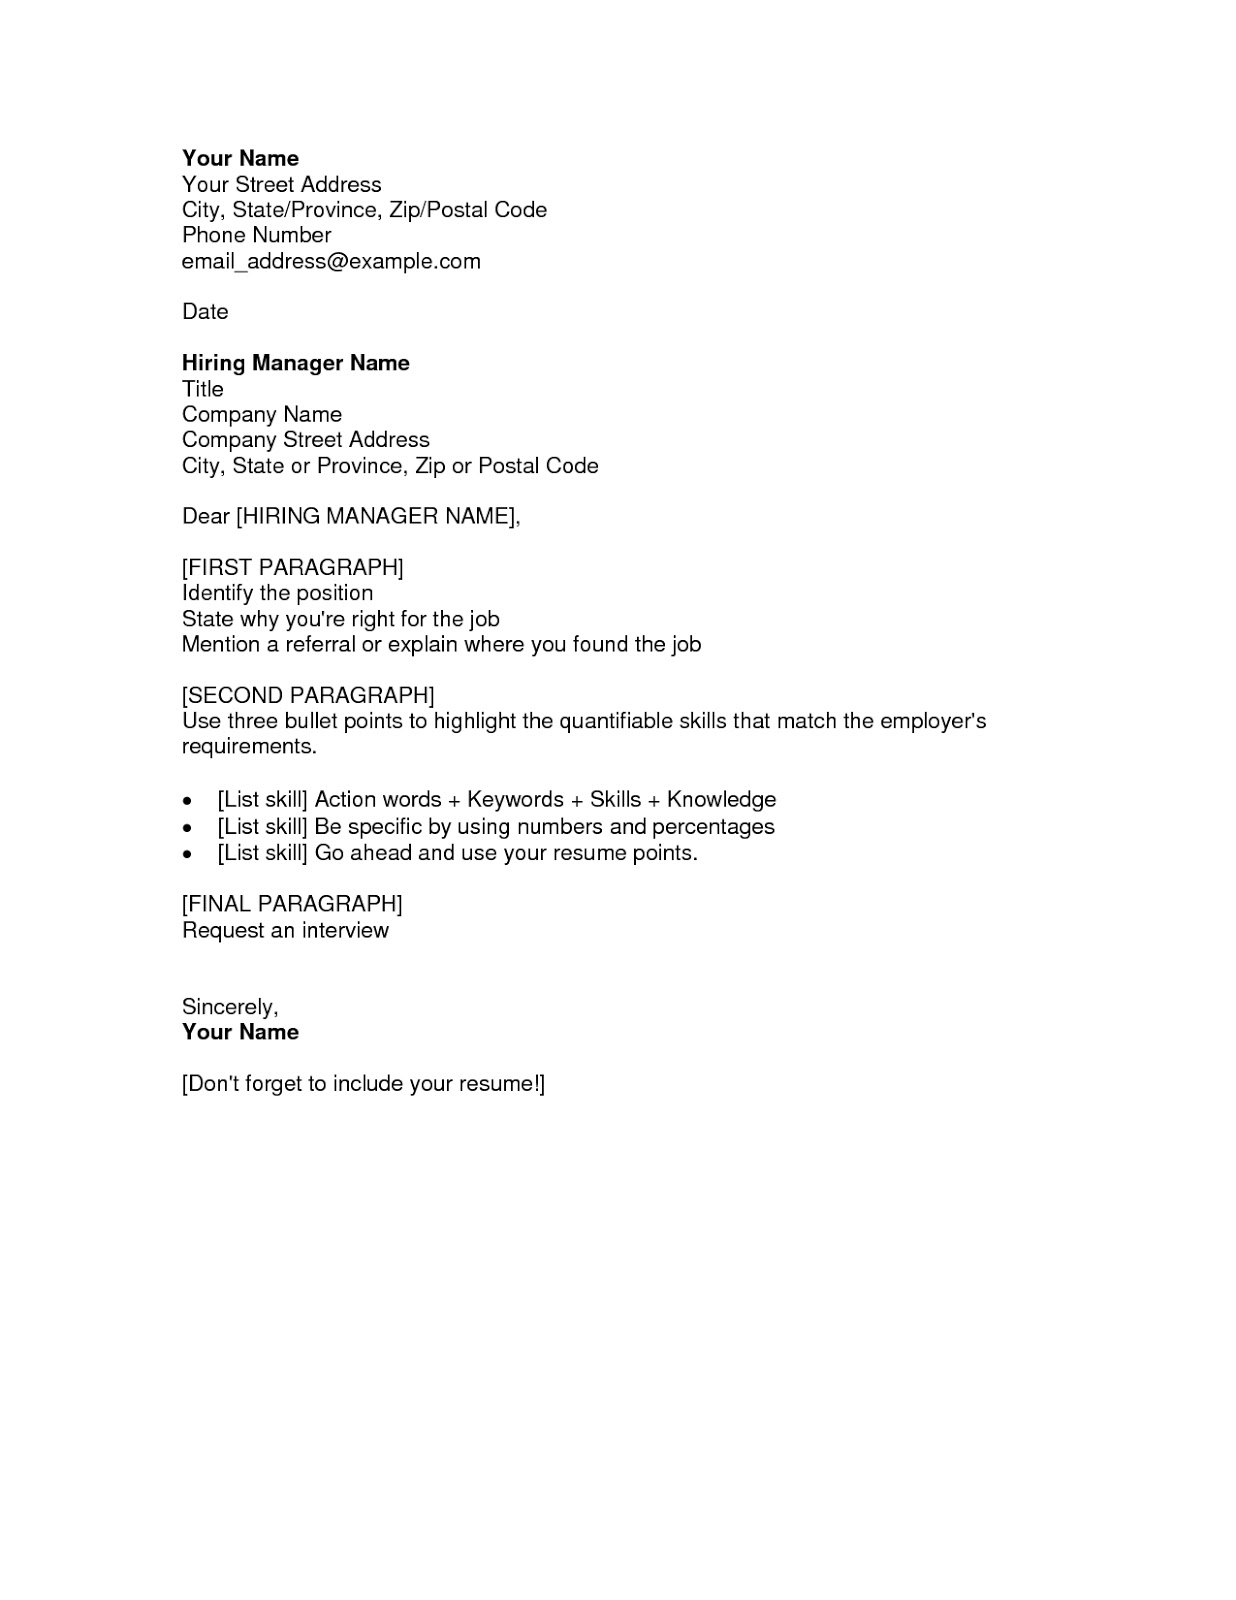 How To Write A Resume And Cover Letter Free Cover Letter Samples For Resumes Sample Resumes